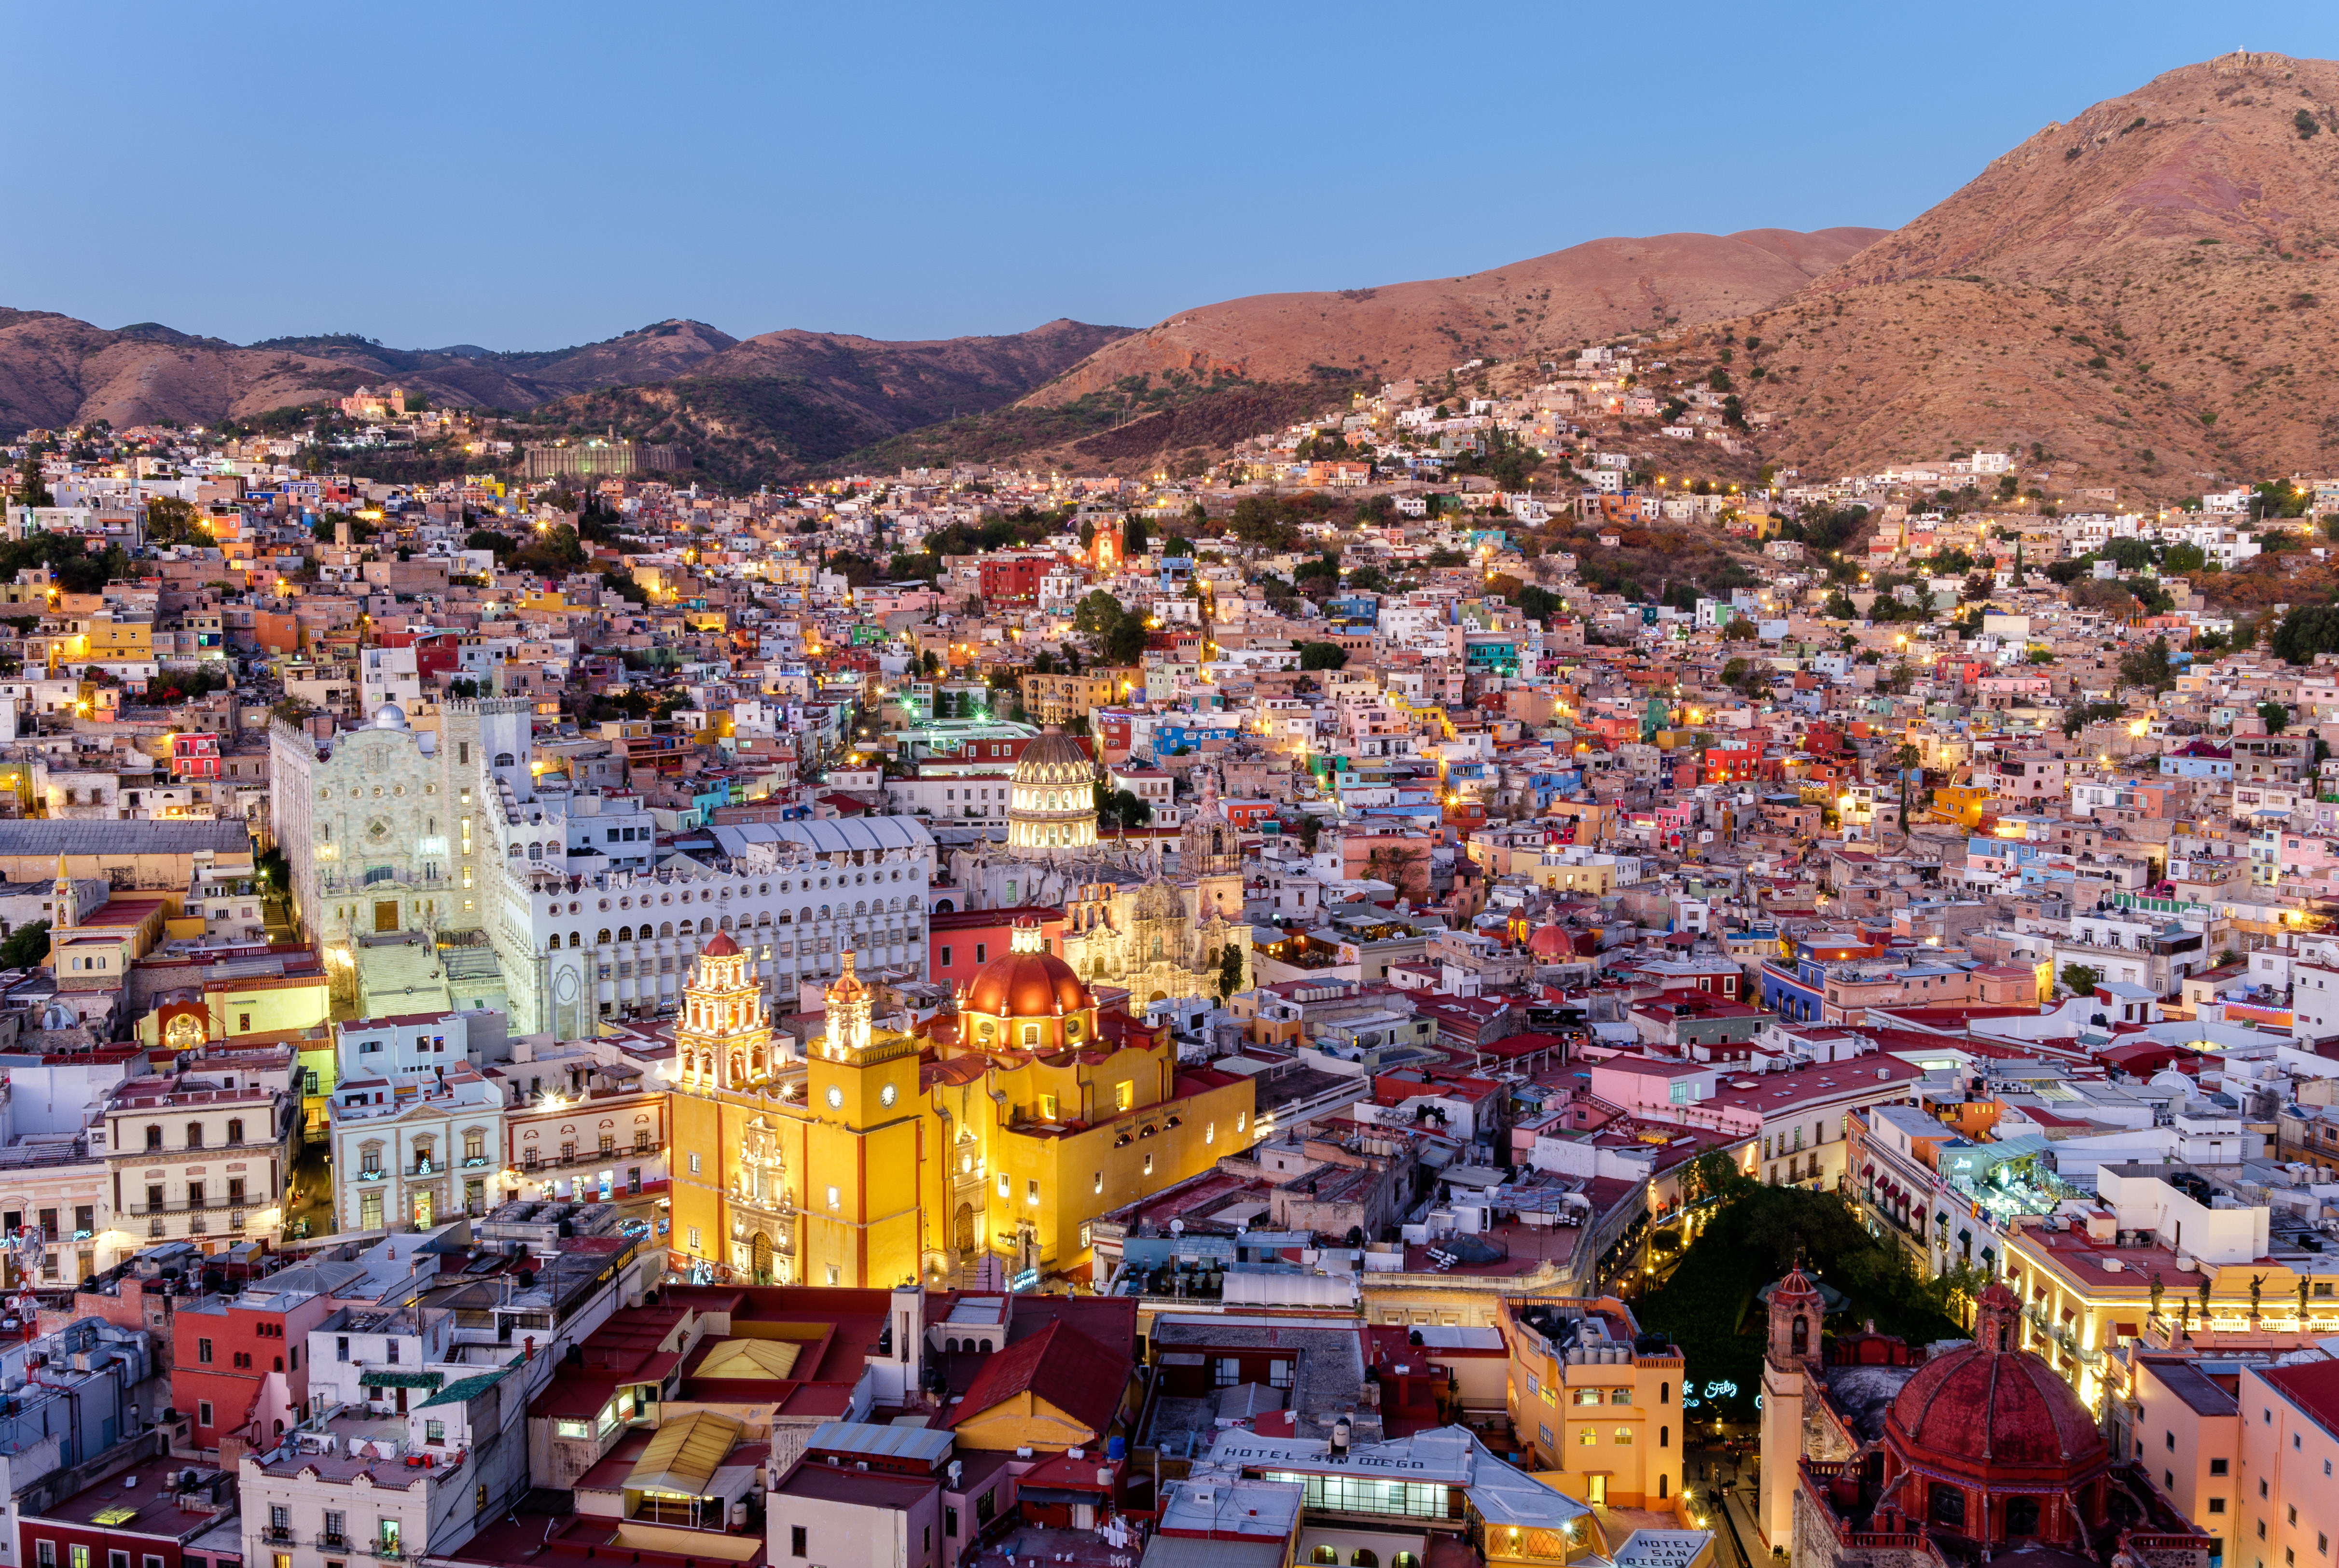 Guanajuato City - Aerial View at Twilight